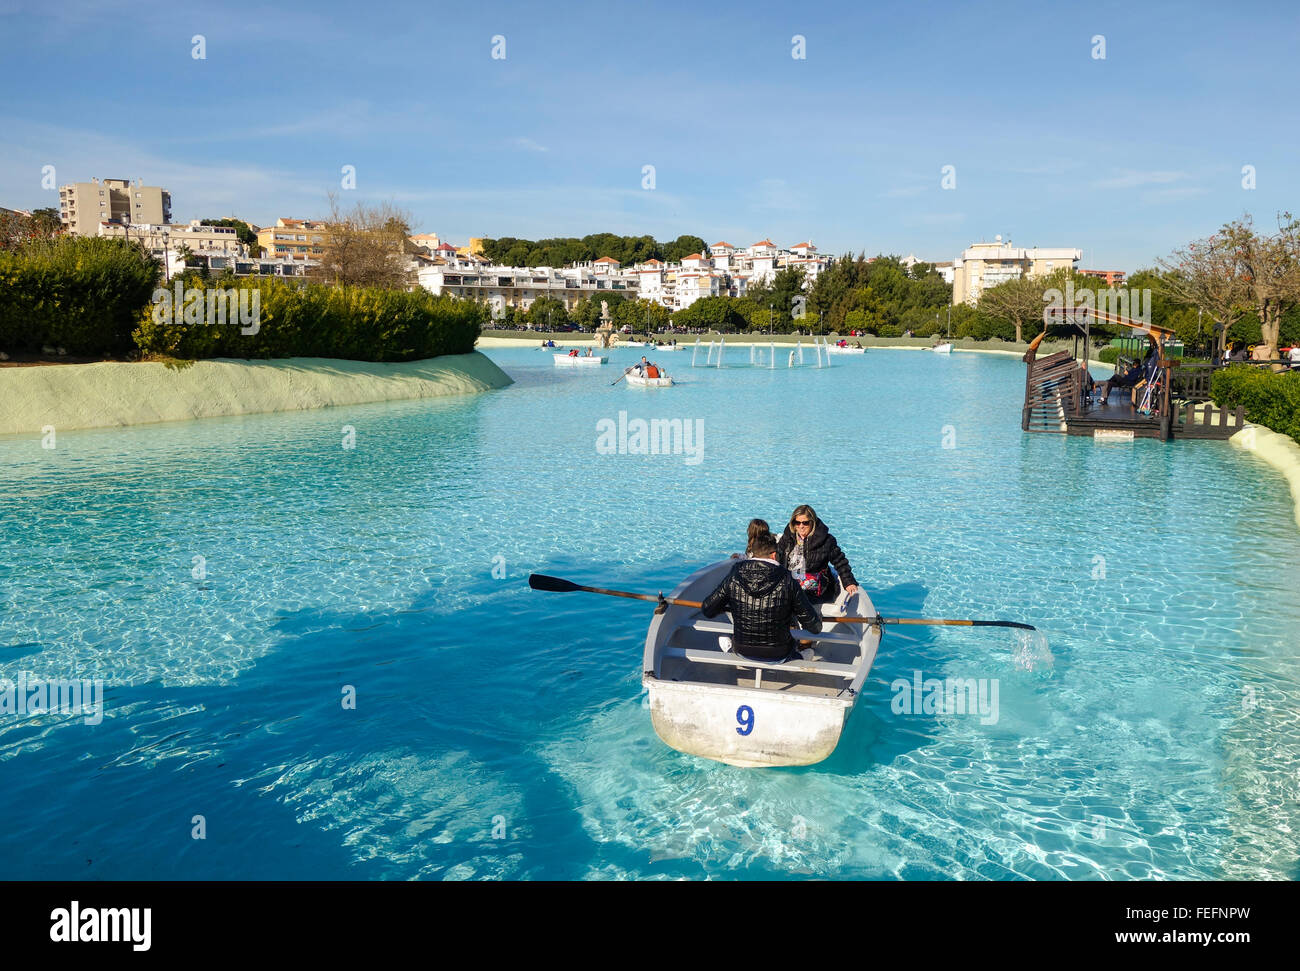 Boating pond, Artificial lake in La bateria atraction public Park, Torremolinos. Costa del Sol, Spain - Stock Image